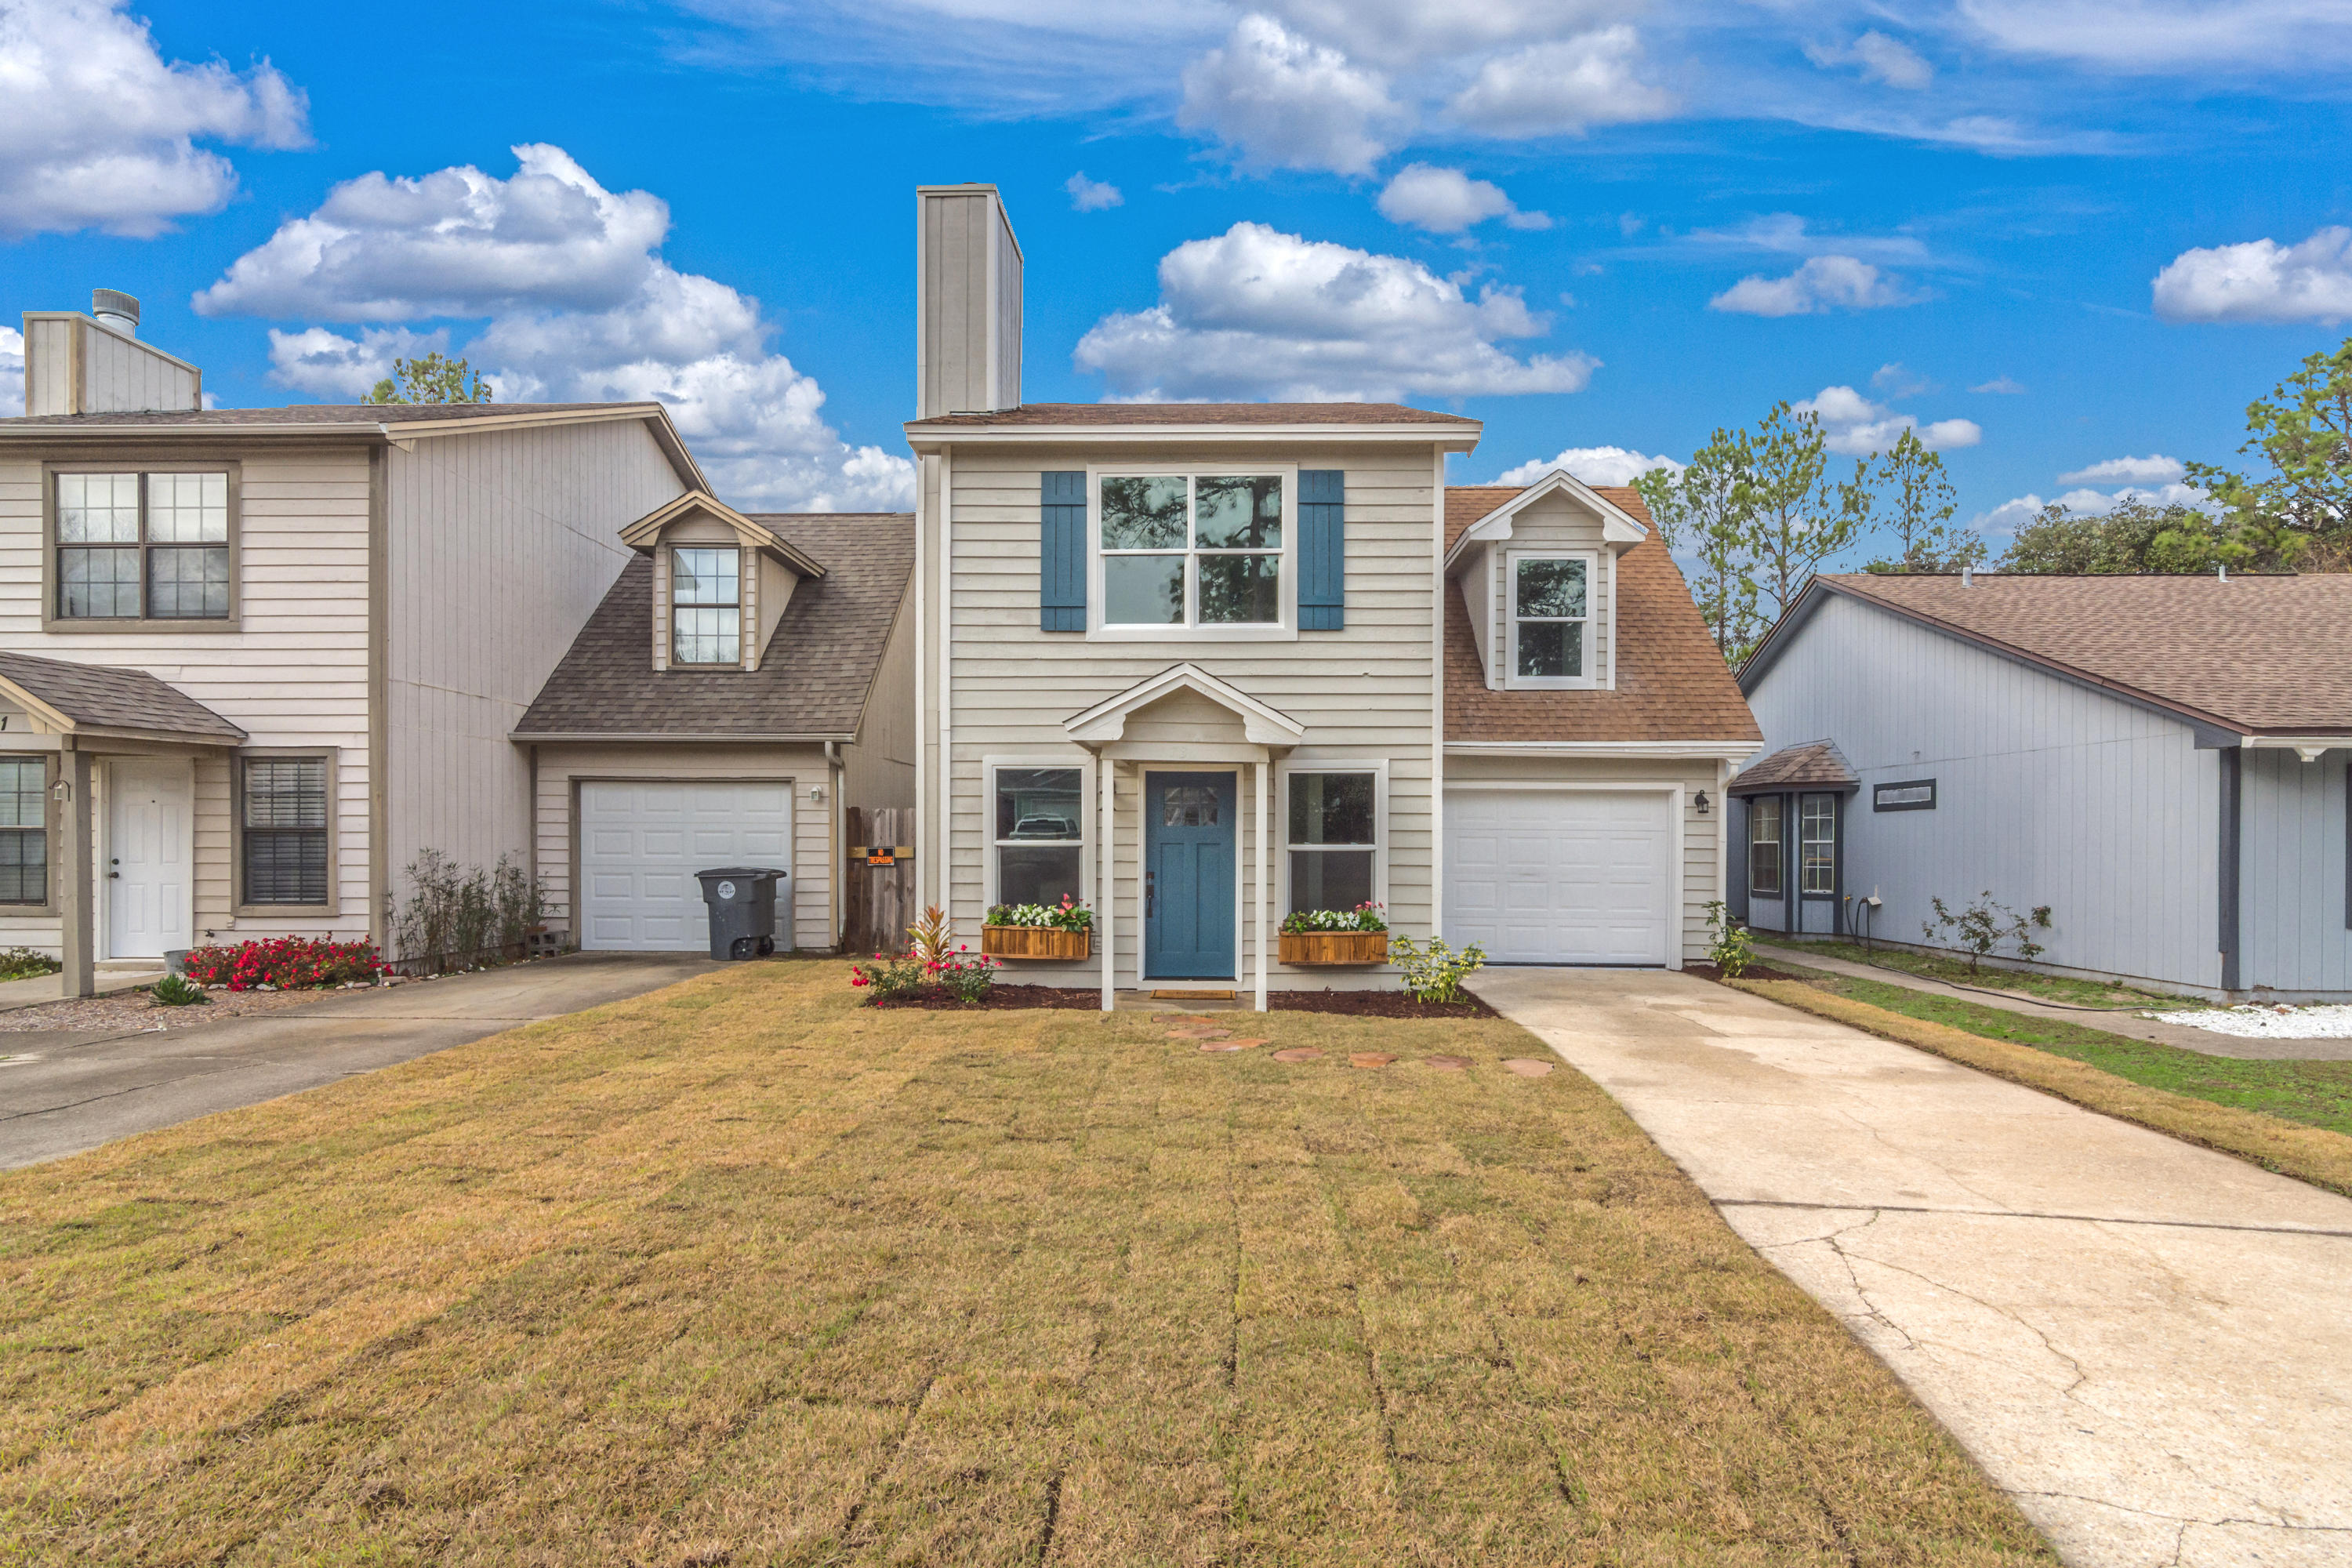 Photo of home for sale at 73 Kelly, Valparaiso FL